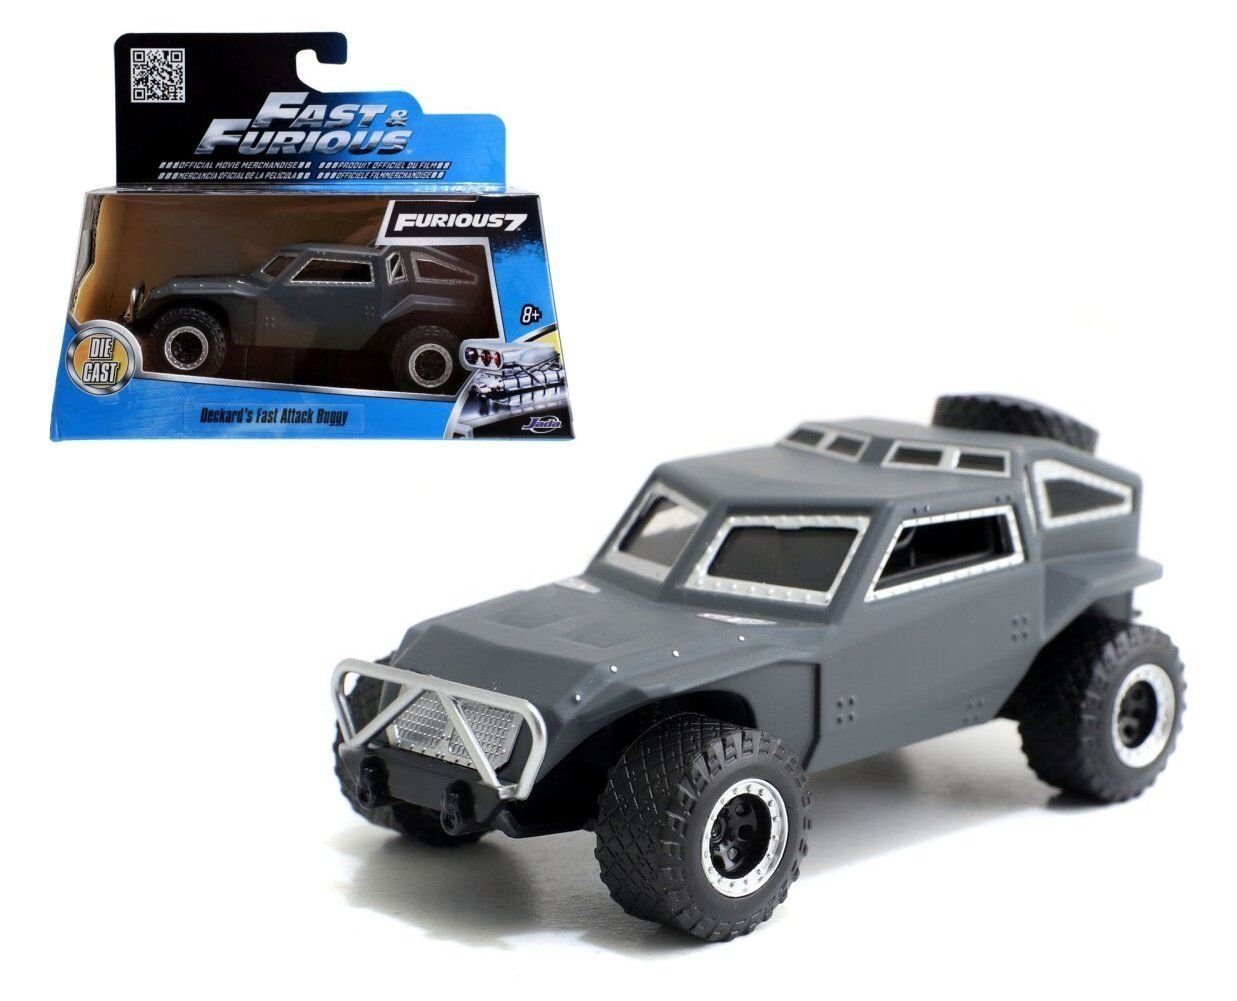 Toy box metal decor wall art shop play children store a180 ebay - Tomica 23 Mitsubishi Rvr Listing In The Tomica Cars Trucks Vans Diecast Models Toys Toys Hobbies Category On Ebid Singapore Diecast Pinterest